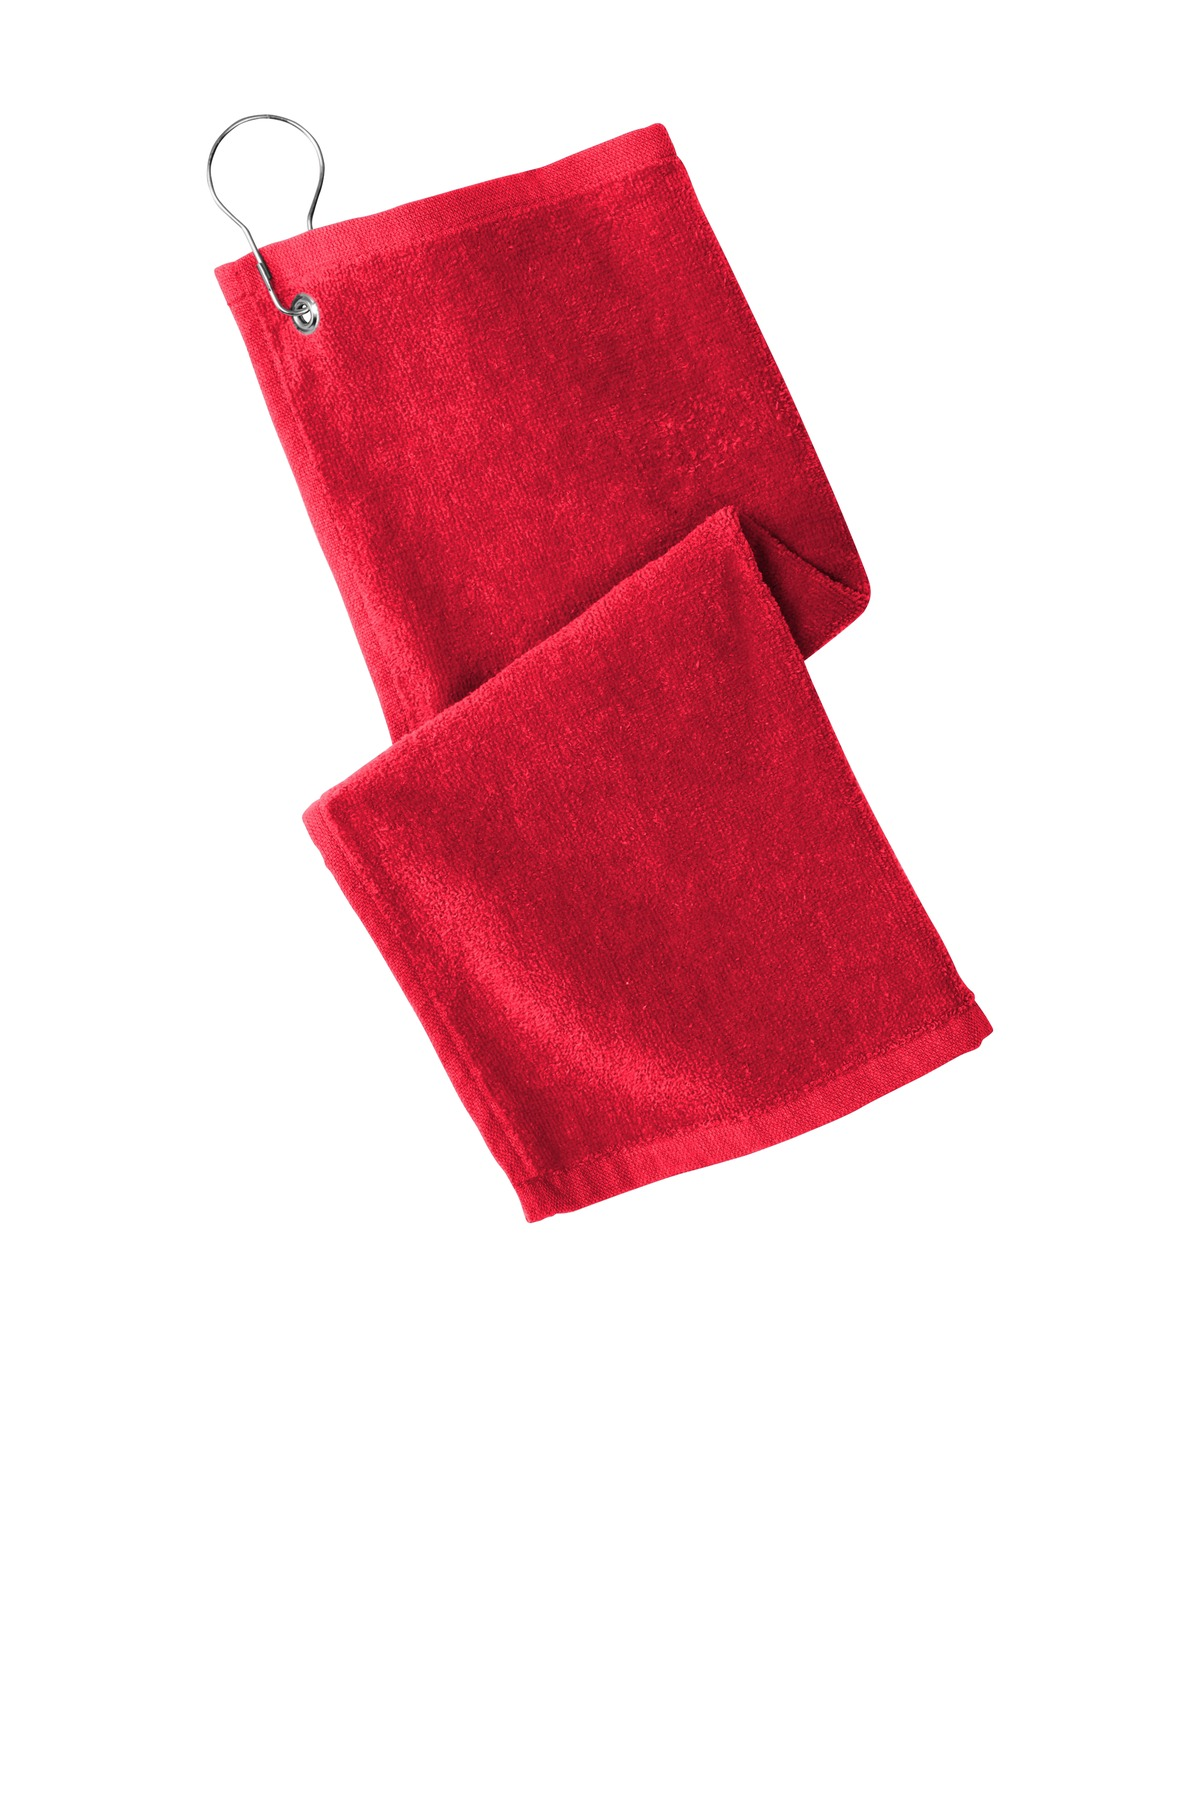 Port Authority  ®  Grommeted Hemmed Towel PT400 - Red